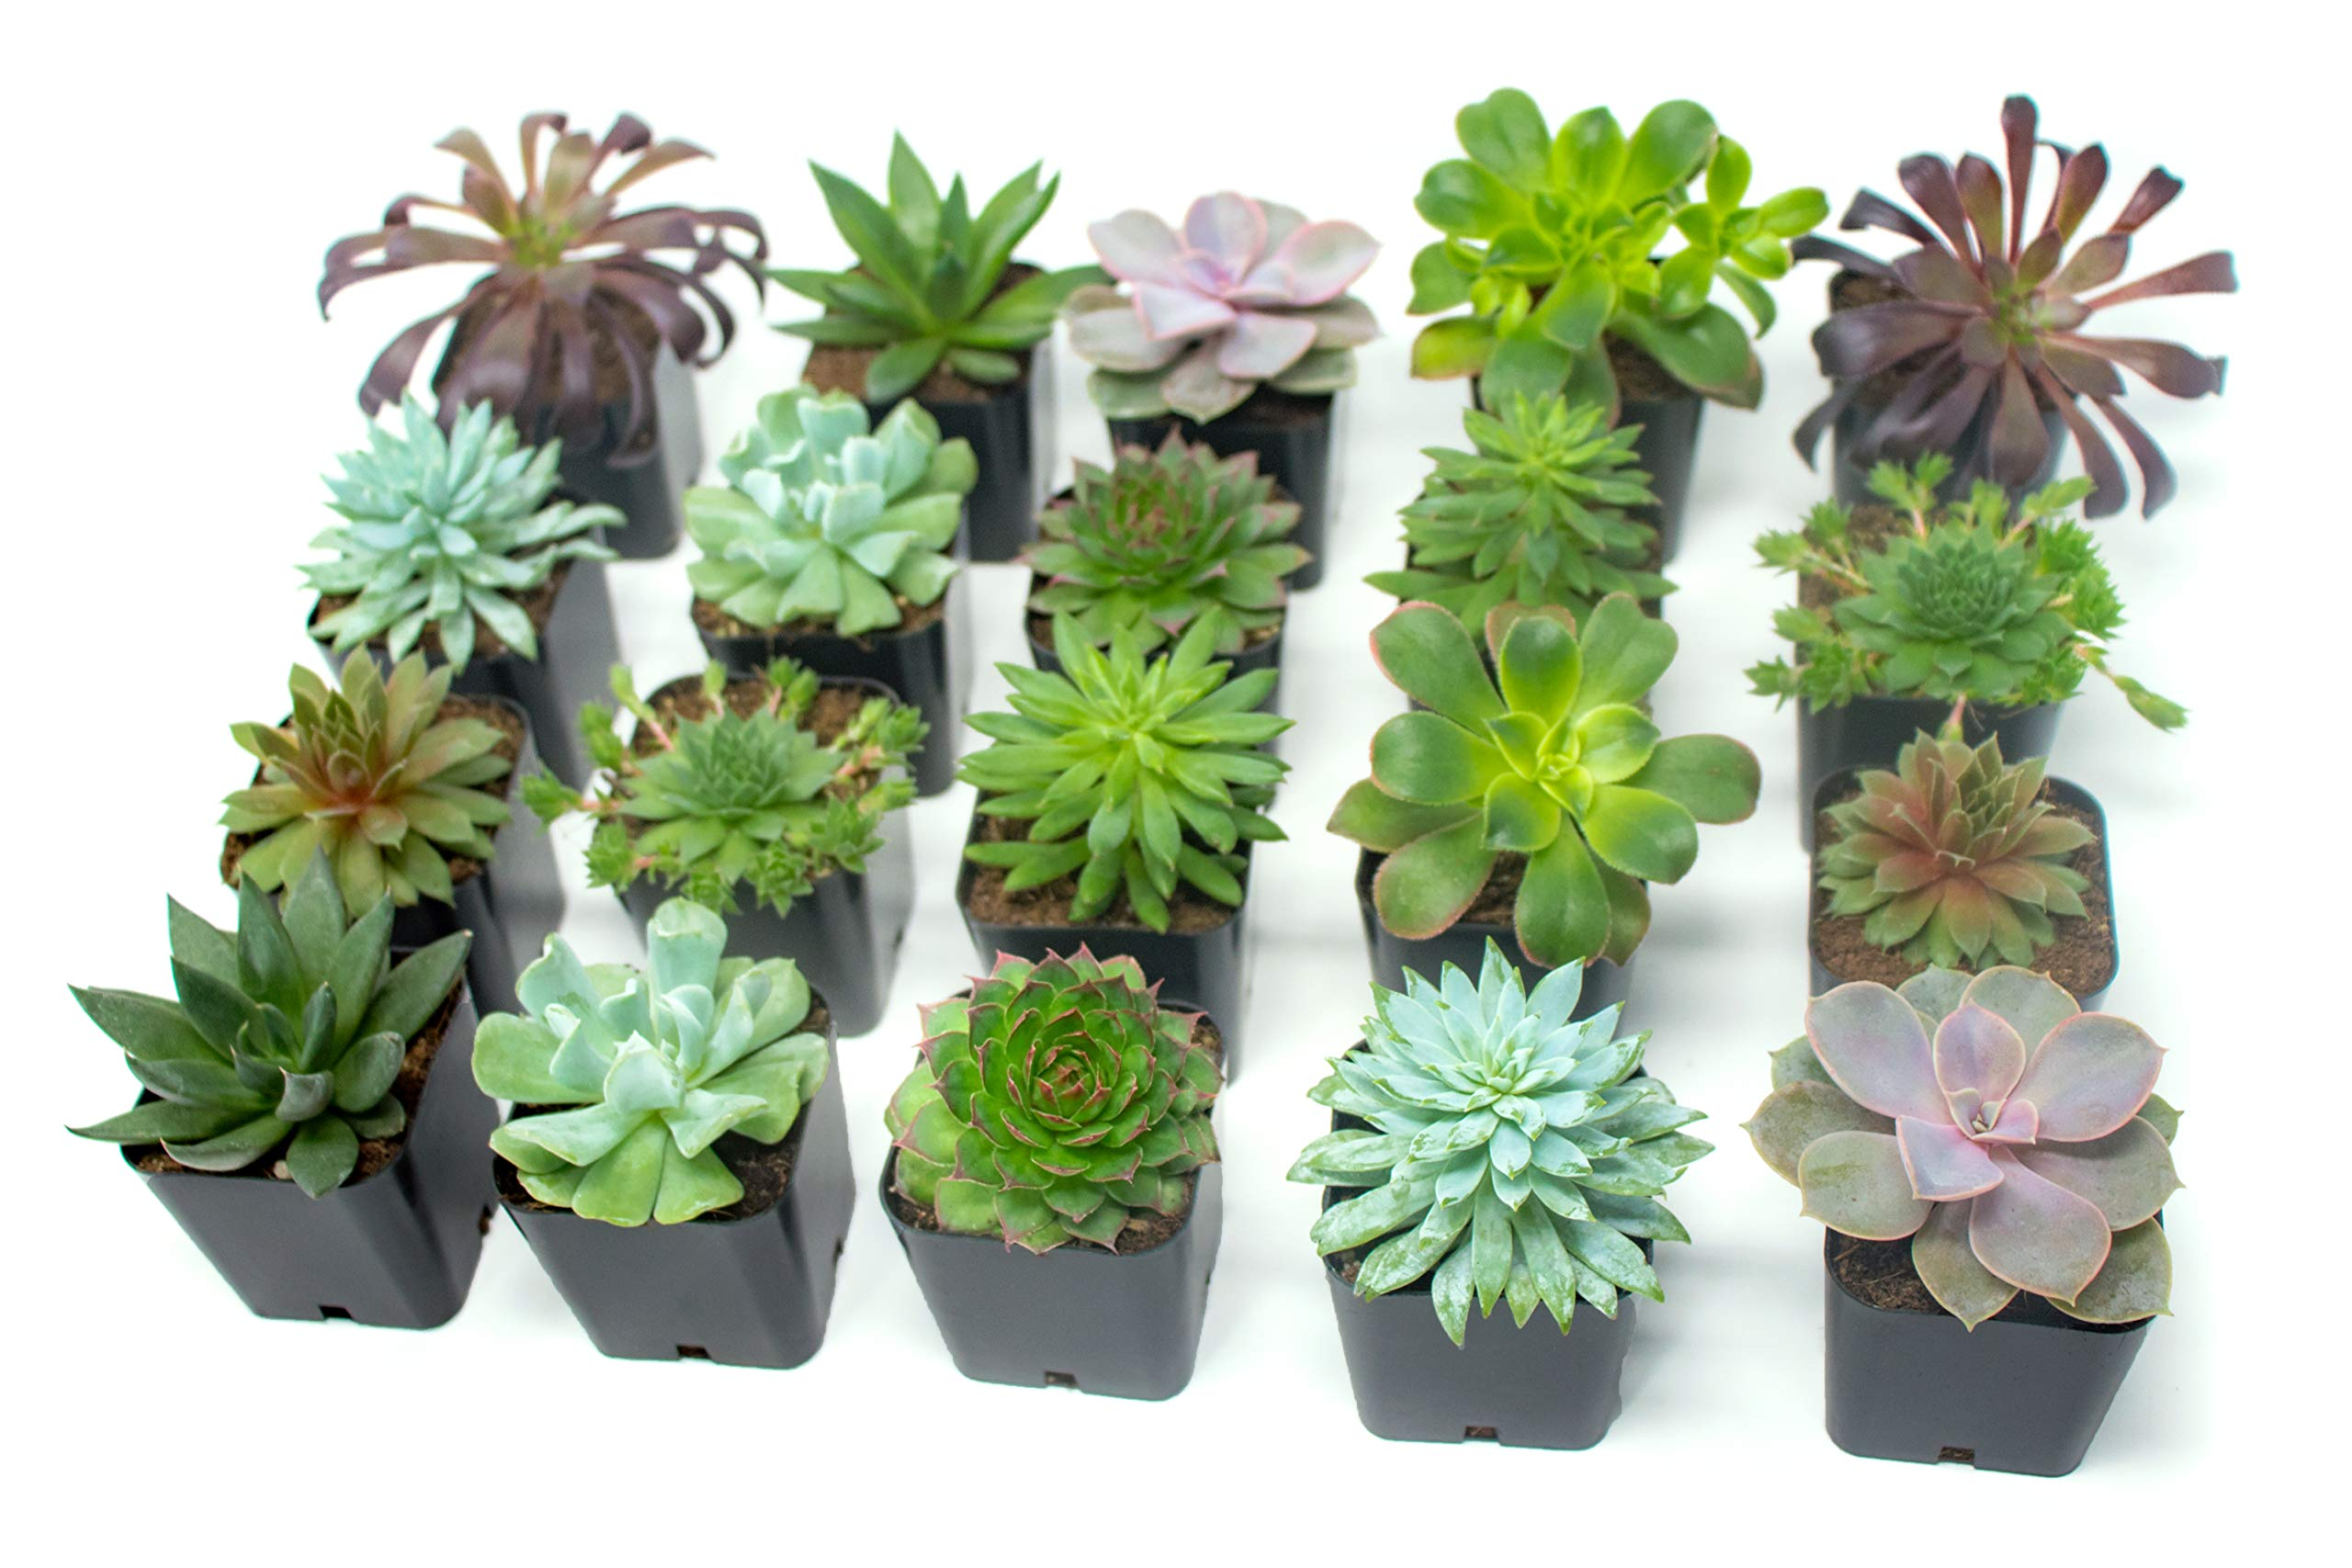 Succulent Plants (20 Pack) Fully Rooted in Planter Pots with Soil | Real Live Potted Succulents / Unique Indoor Cactus Decor by Plants for Pets 11 HAND SELECTED: Every pack of succulents we send is hand-picked. You will receive a unique collection of species that are fully rooted and similar to the product photos. Note that we rotate our nursery stock often, so the exact species we send changes every week. THE EASIEST HOUSE PLANTS: More appealing than artificial plastic or fake faux plants, and care is a cinch. If you think you can't keep houseplants alive, you're wrong; our succulents don't require fertilizer and can be planted in a decorative pot of your choice within seconds. DIY HOME DECOR: The possibilities are only limited by your imagination; display them in a plant holder, a wall mount, a geometric glass vase, or even in a live wreath. Because of their amazingly low care requirements, they can even make the perfect desk centerpiece for your office.